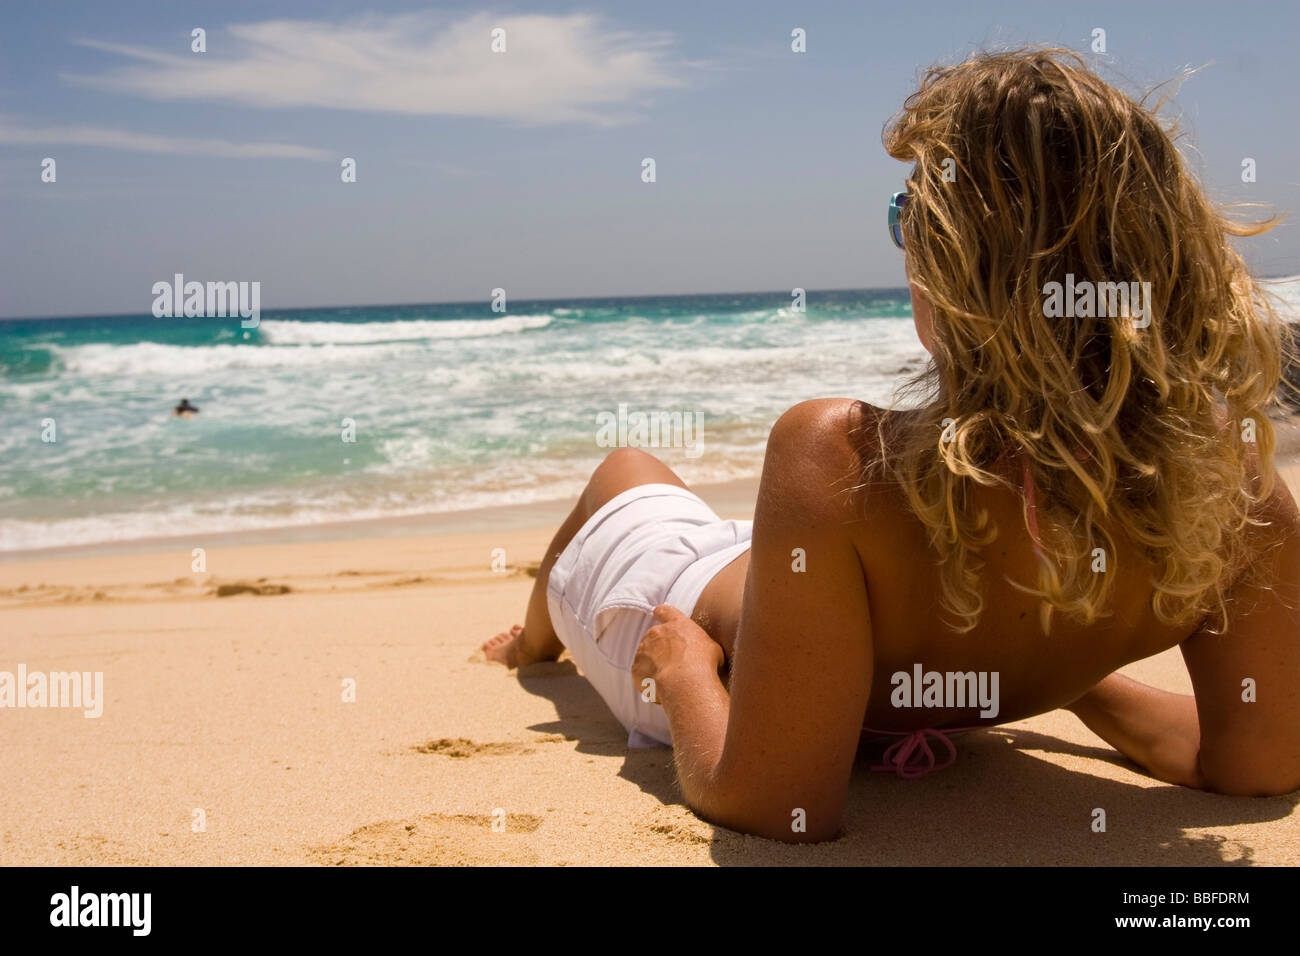 A girl lied down on the sand - Stock Image